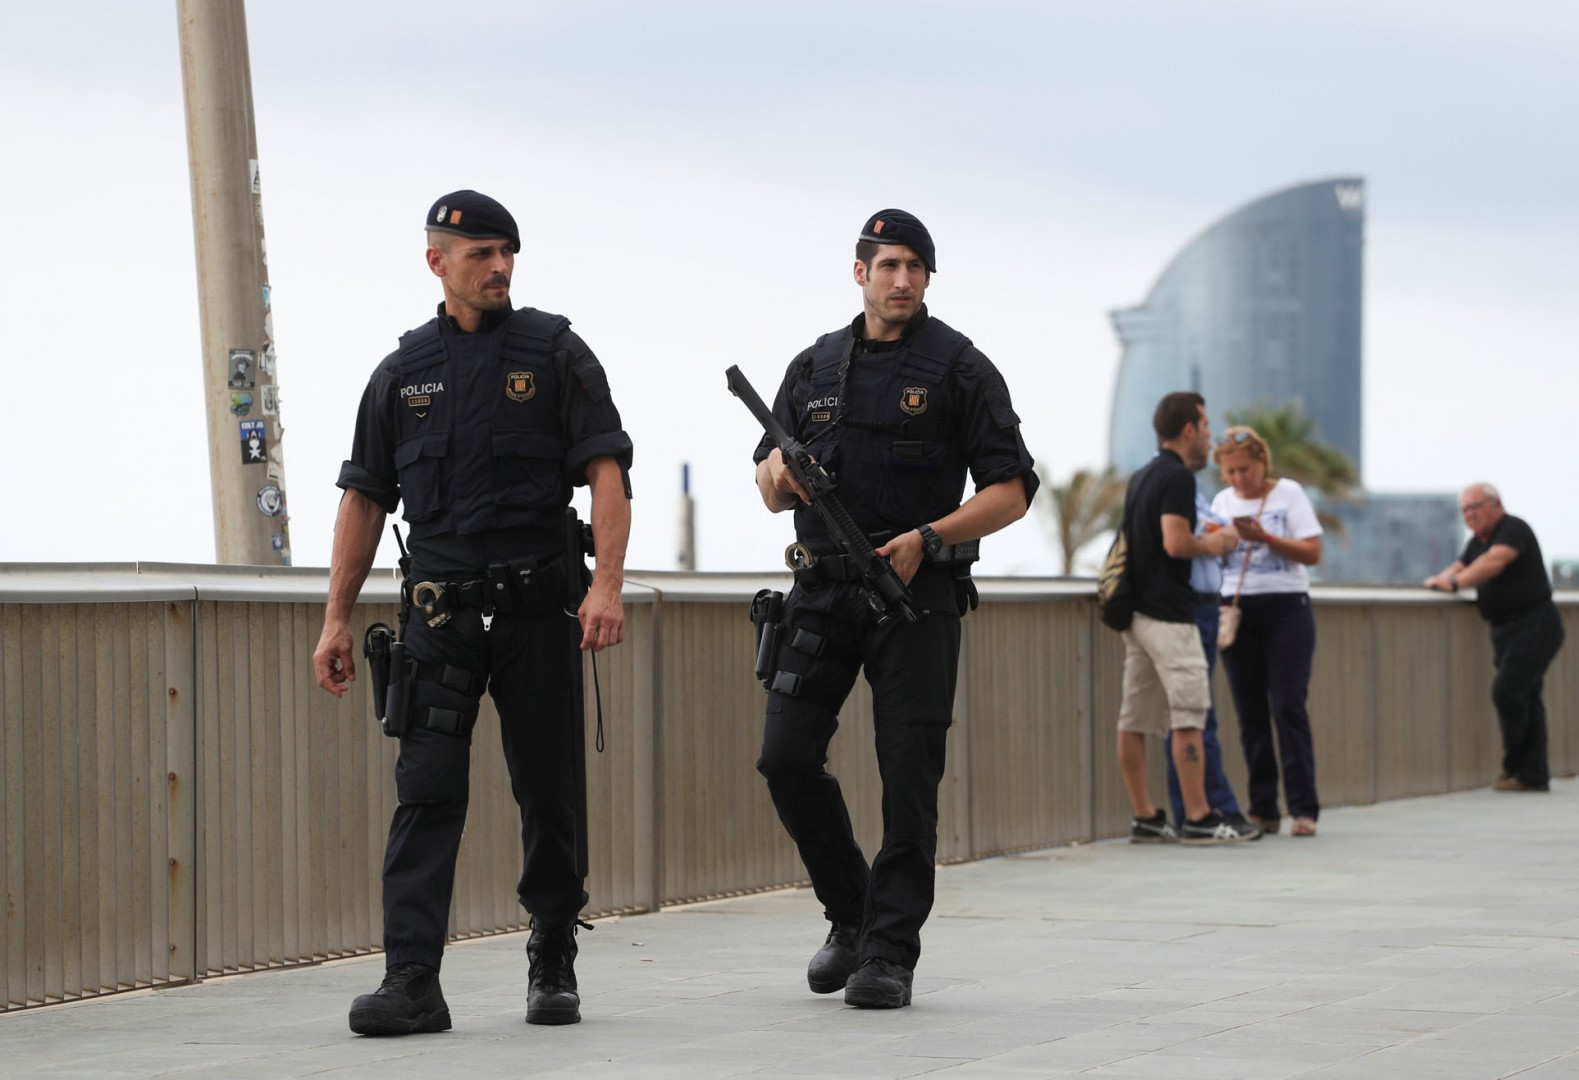 Armed Catalan Mossos d'Esquadra officers patrol along La Barceloneta beach in Barcelona, Spain, August 19, 2017. REUTERS/Sergio Perez